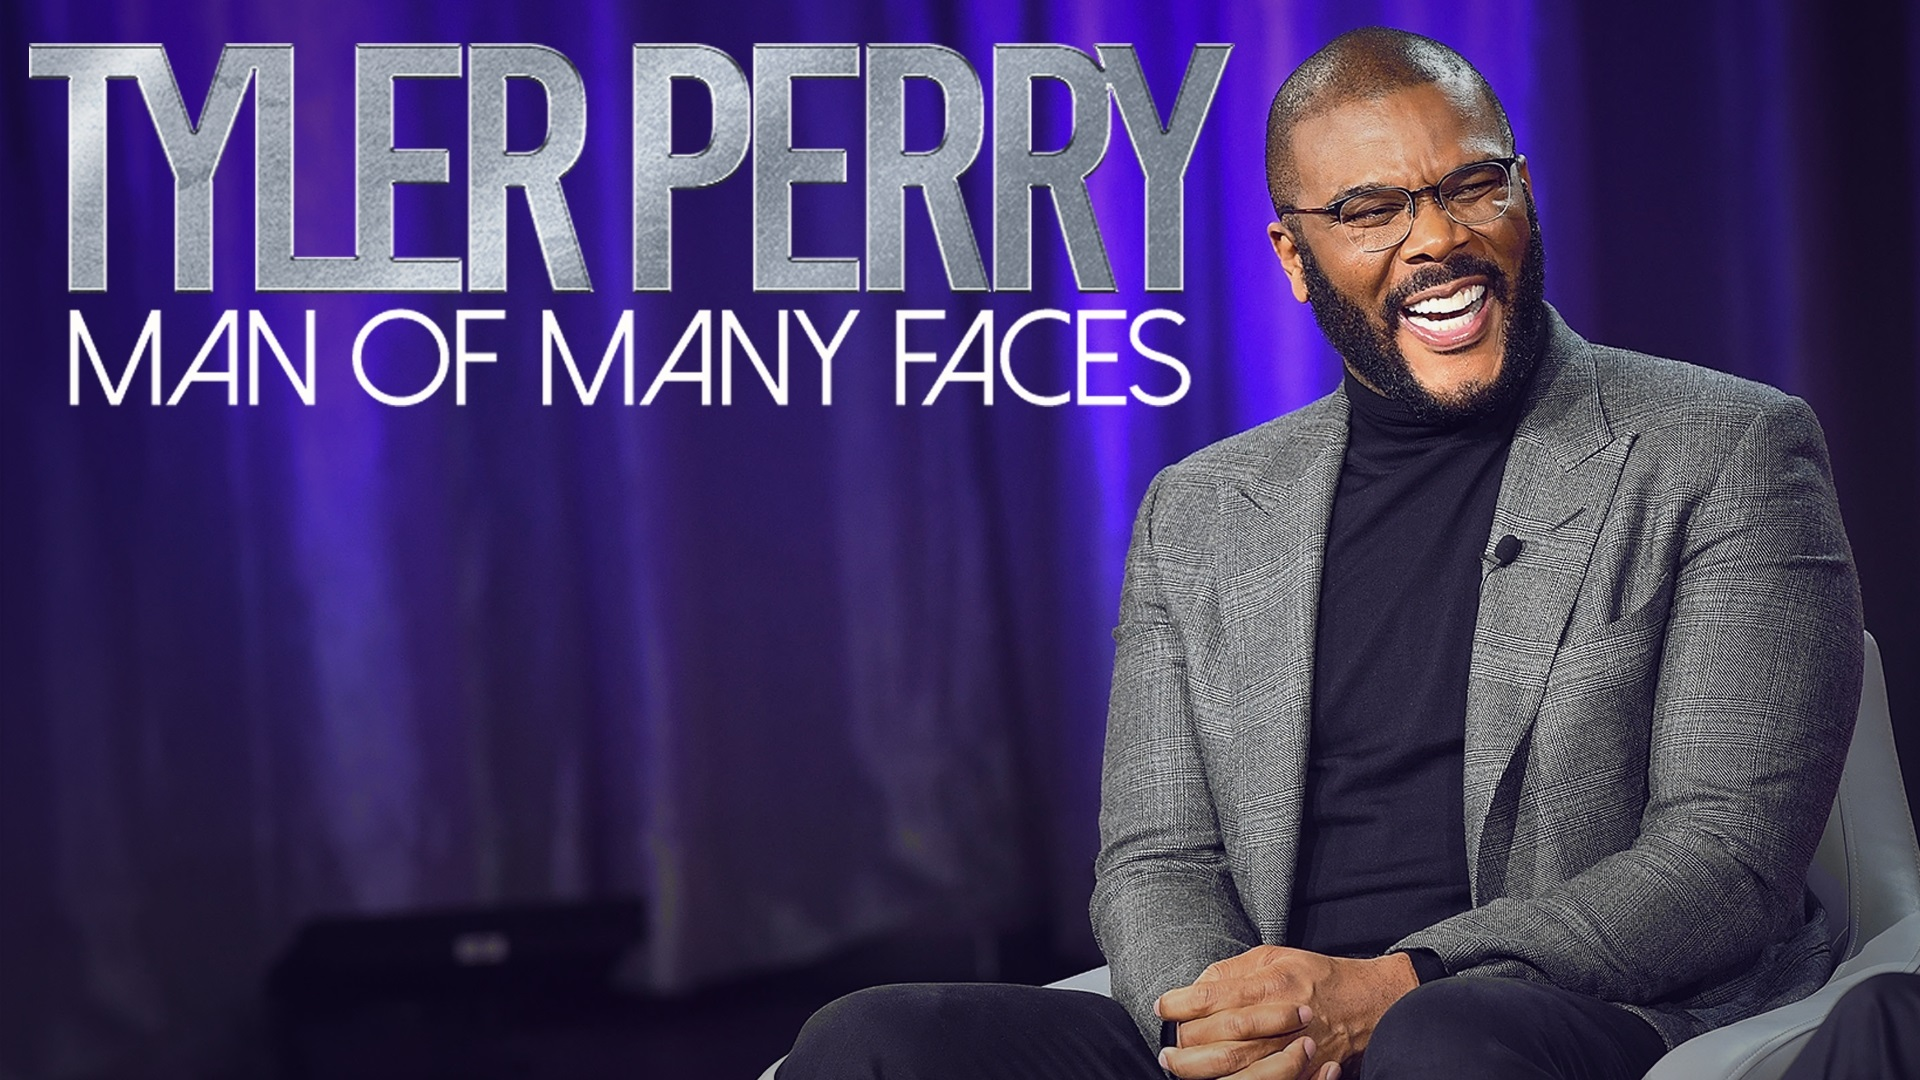 Tyler Perry Man Of Many Faces Official Trailer